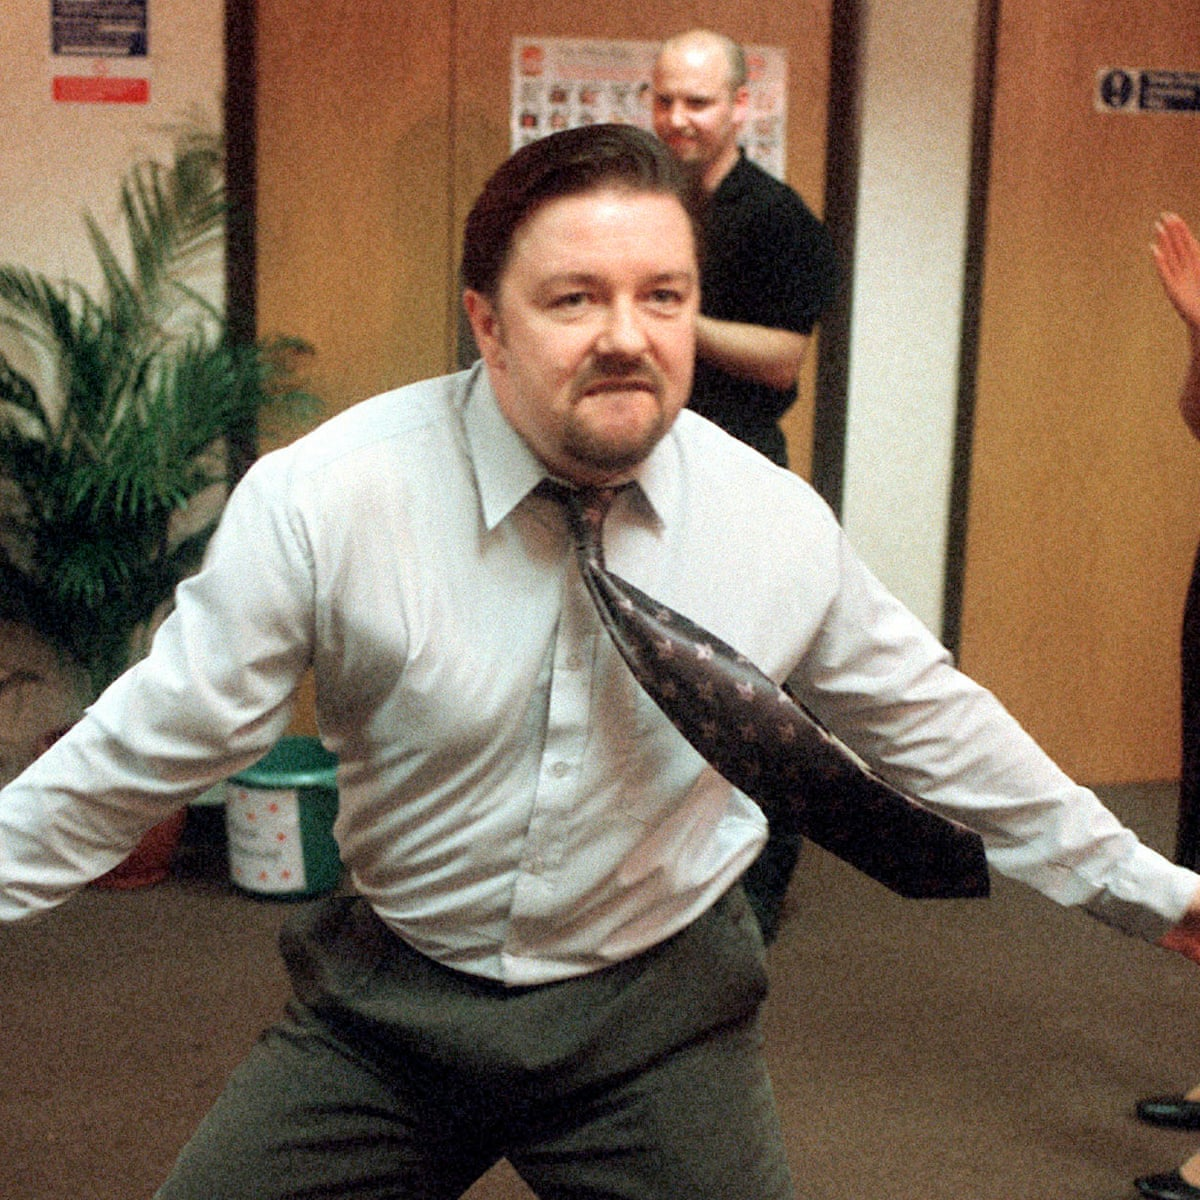 Why can't Ricky Gervais leave David Brent alone? | Ricky Gervais | The  Guardian